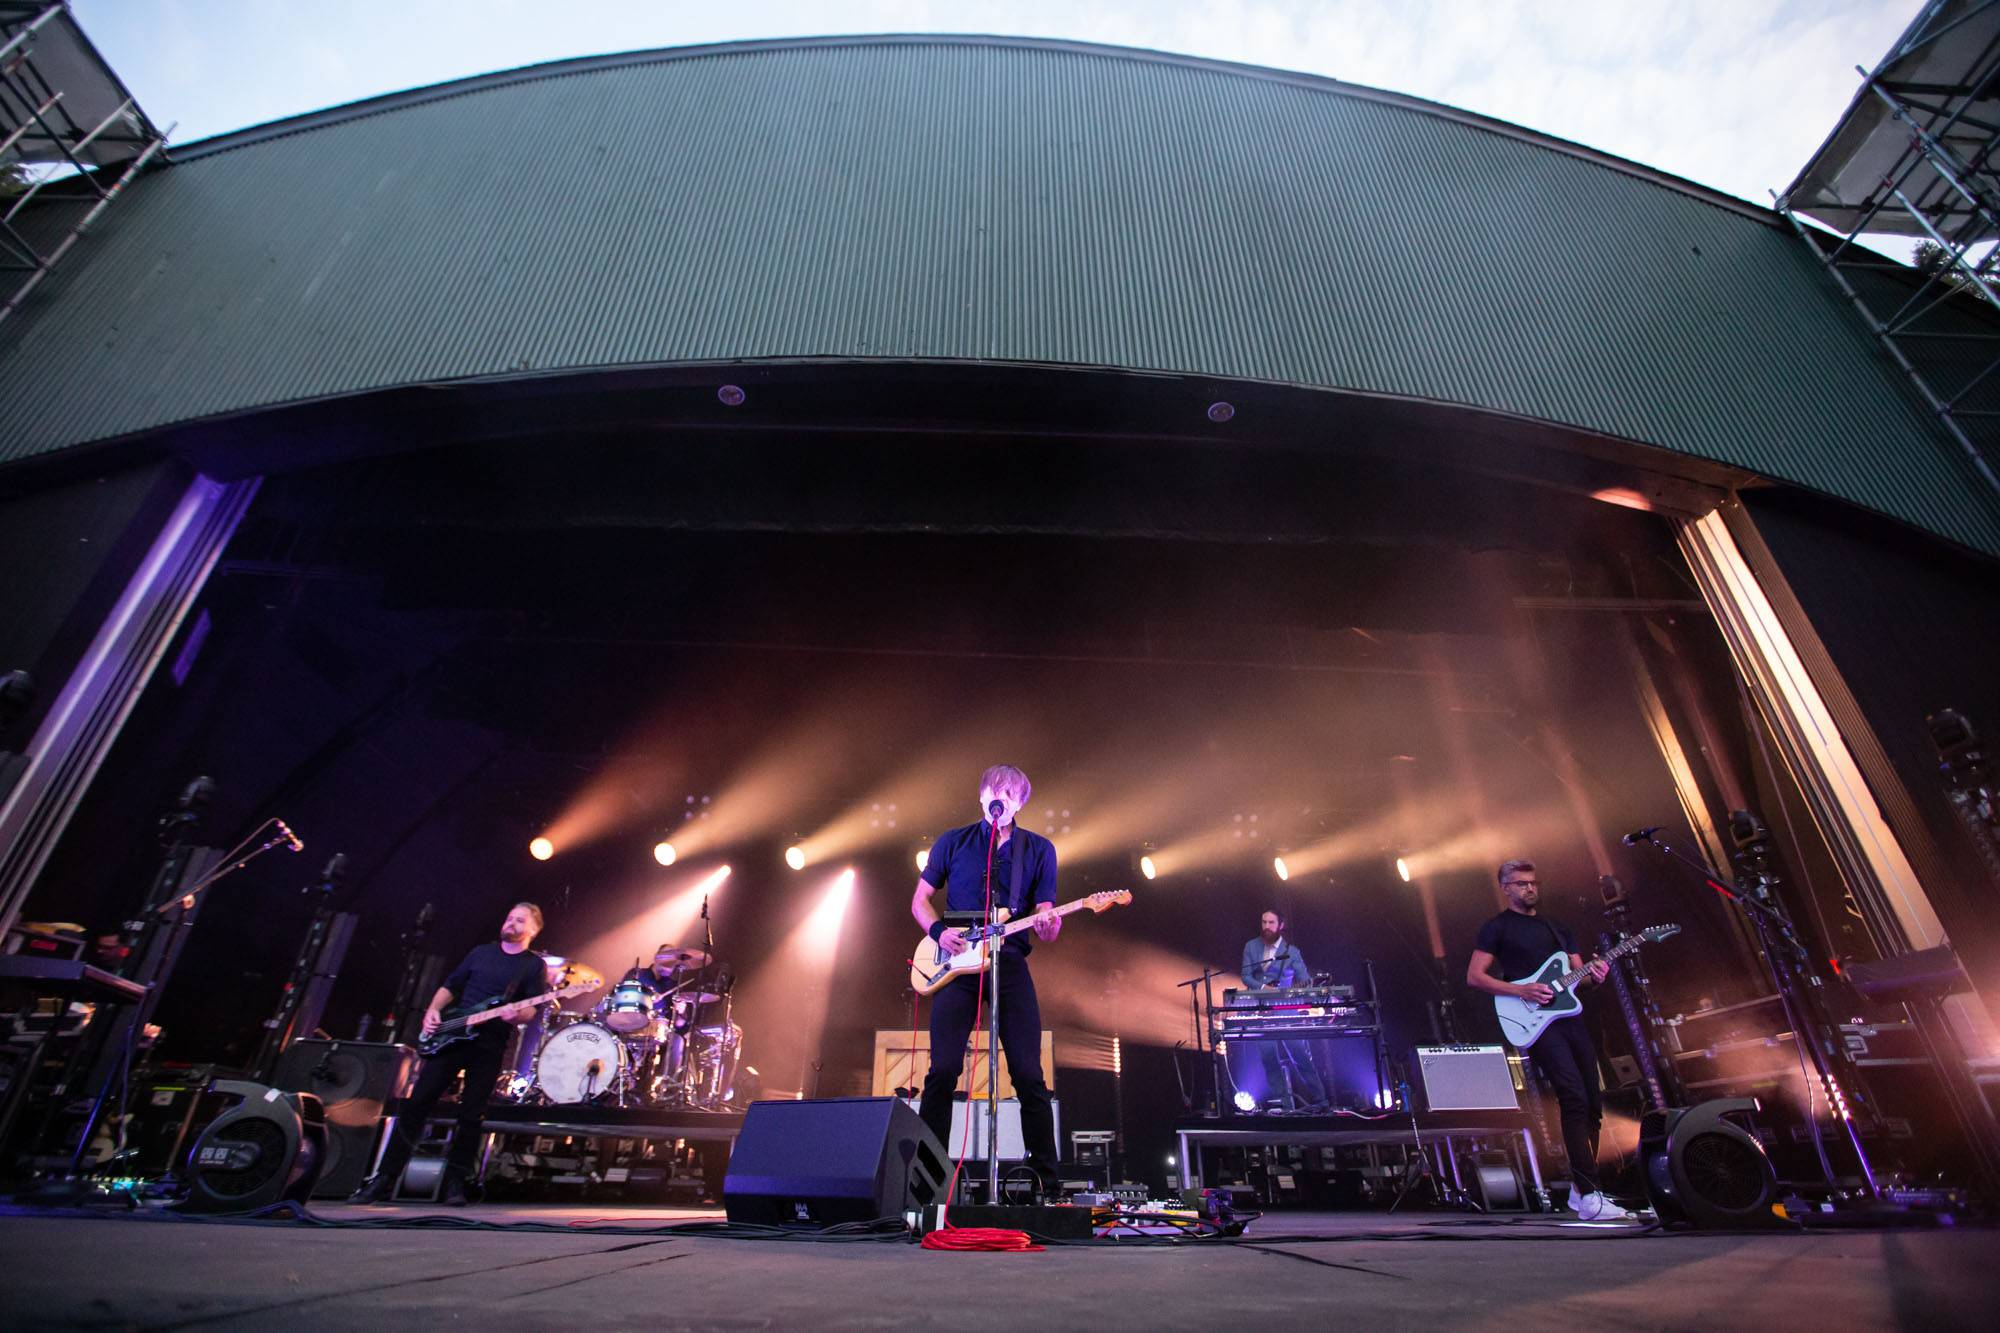 Death Cab for Cutie at the Malkin Bowl, Vancouver, Sep 5 2019. Kirk Chantraine photo.